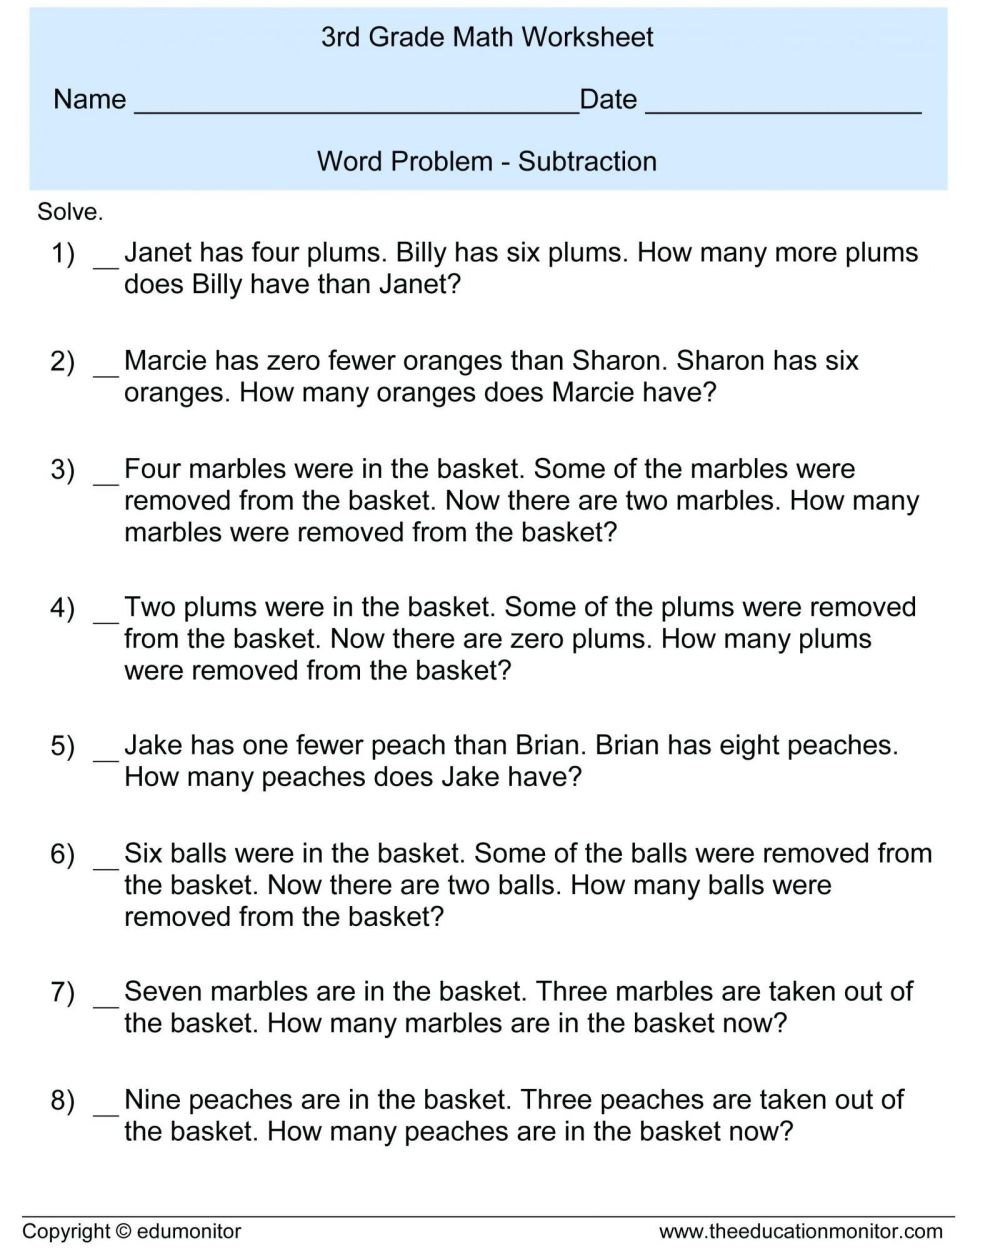 medium resolution of 6th Grade Fractions Word Problems Worksheet   Printable Worksheets and  Activities for Teachers